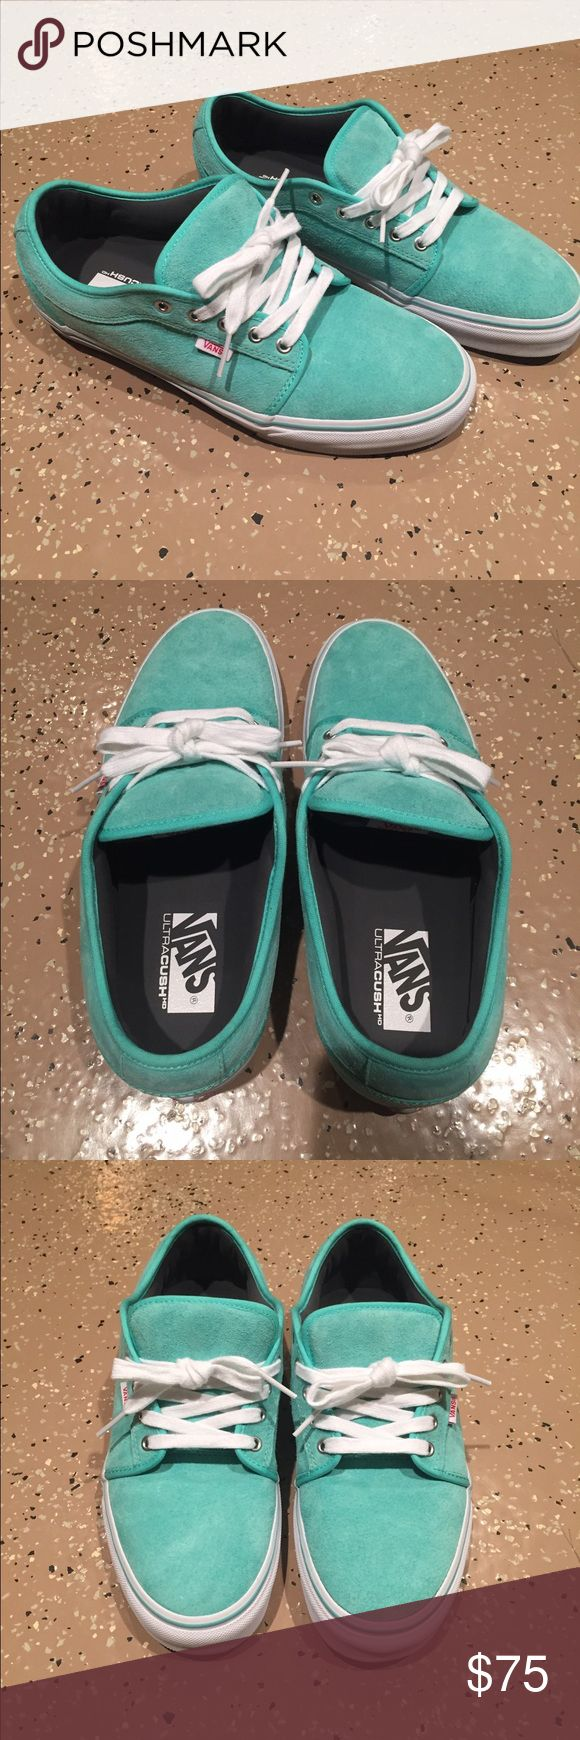 BRAND NEW Teal Vans Chukka Low's Size 10.5 Brand New w/o tags LIMITED EDITION Teal vans chukka lows! Size M10.5 Vans Shoes Sneakers